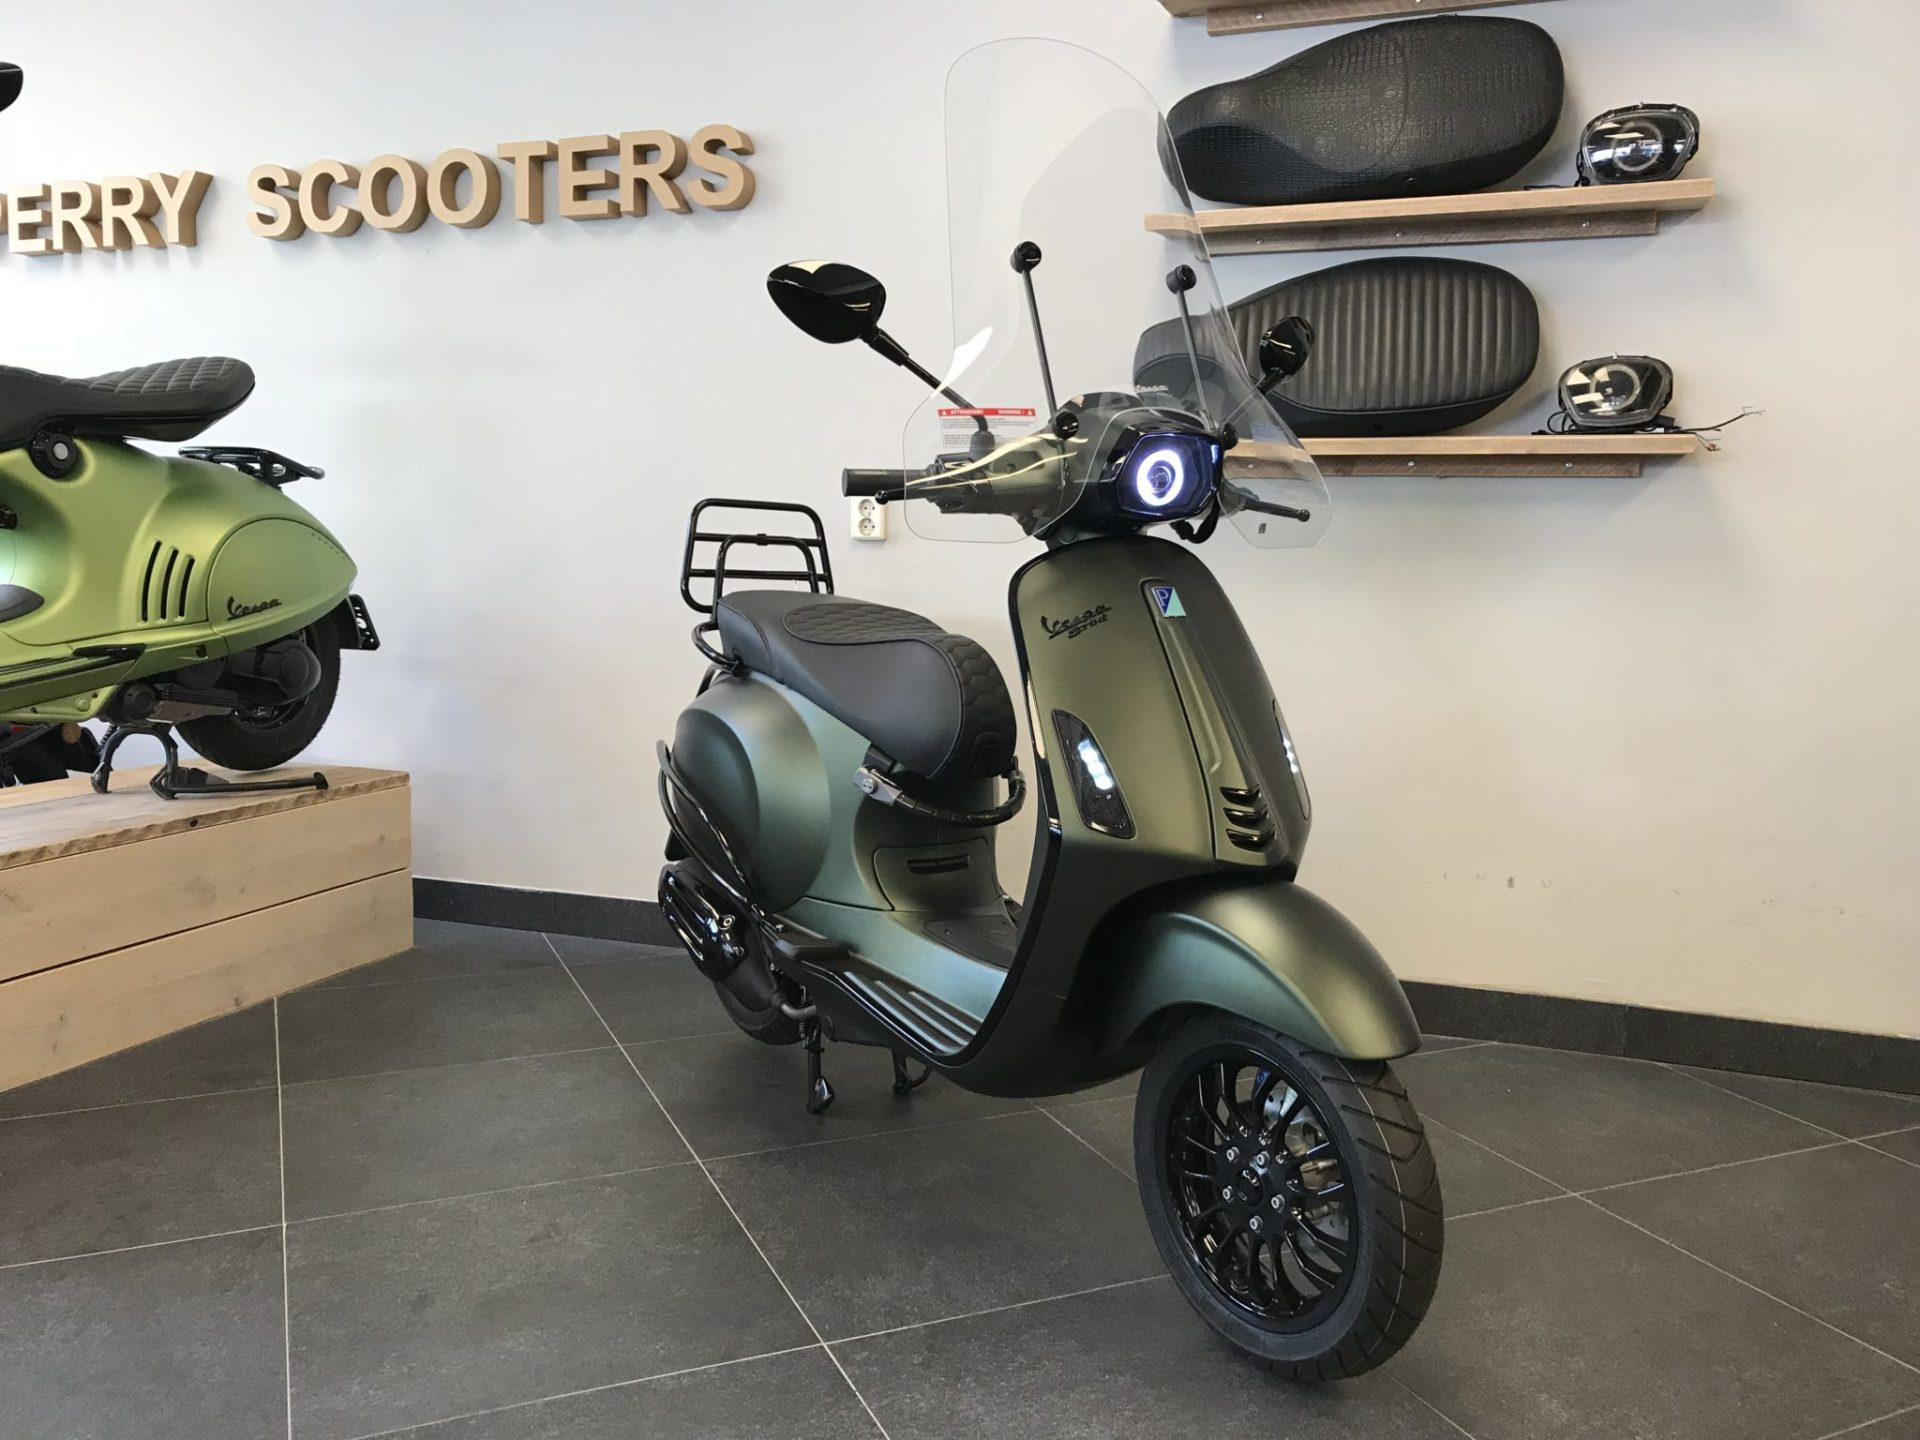 Wonderbaar Vespa Sprint Candy Green - Perry Scooters Haarlem PG-53